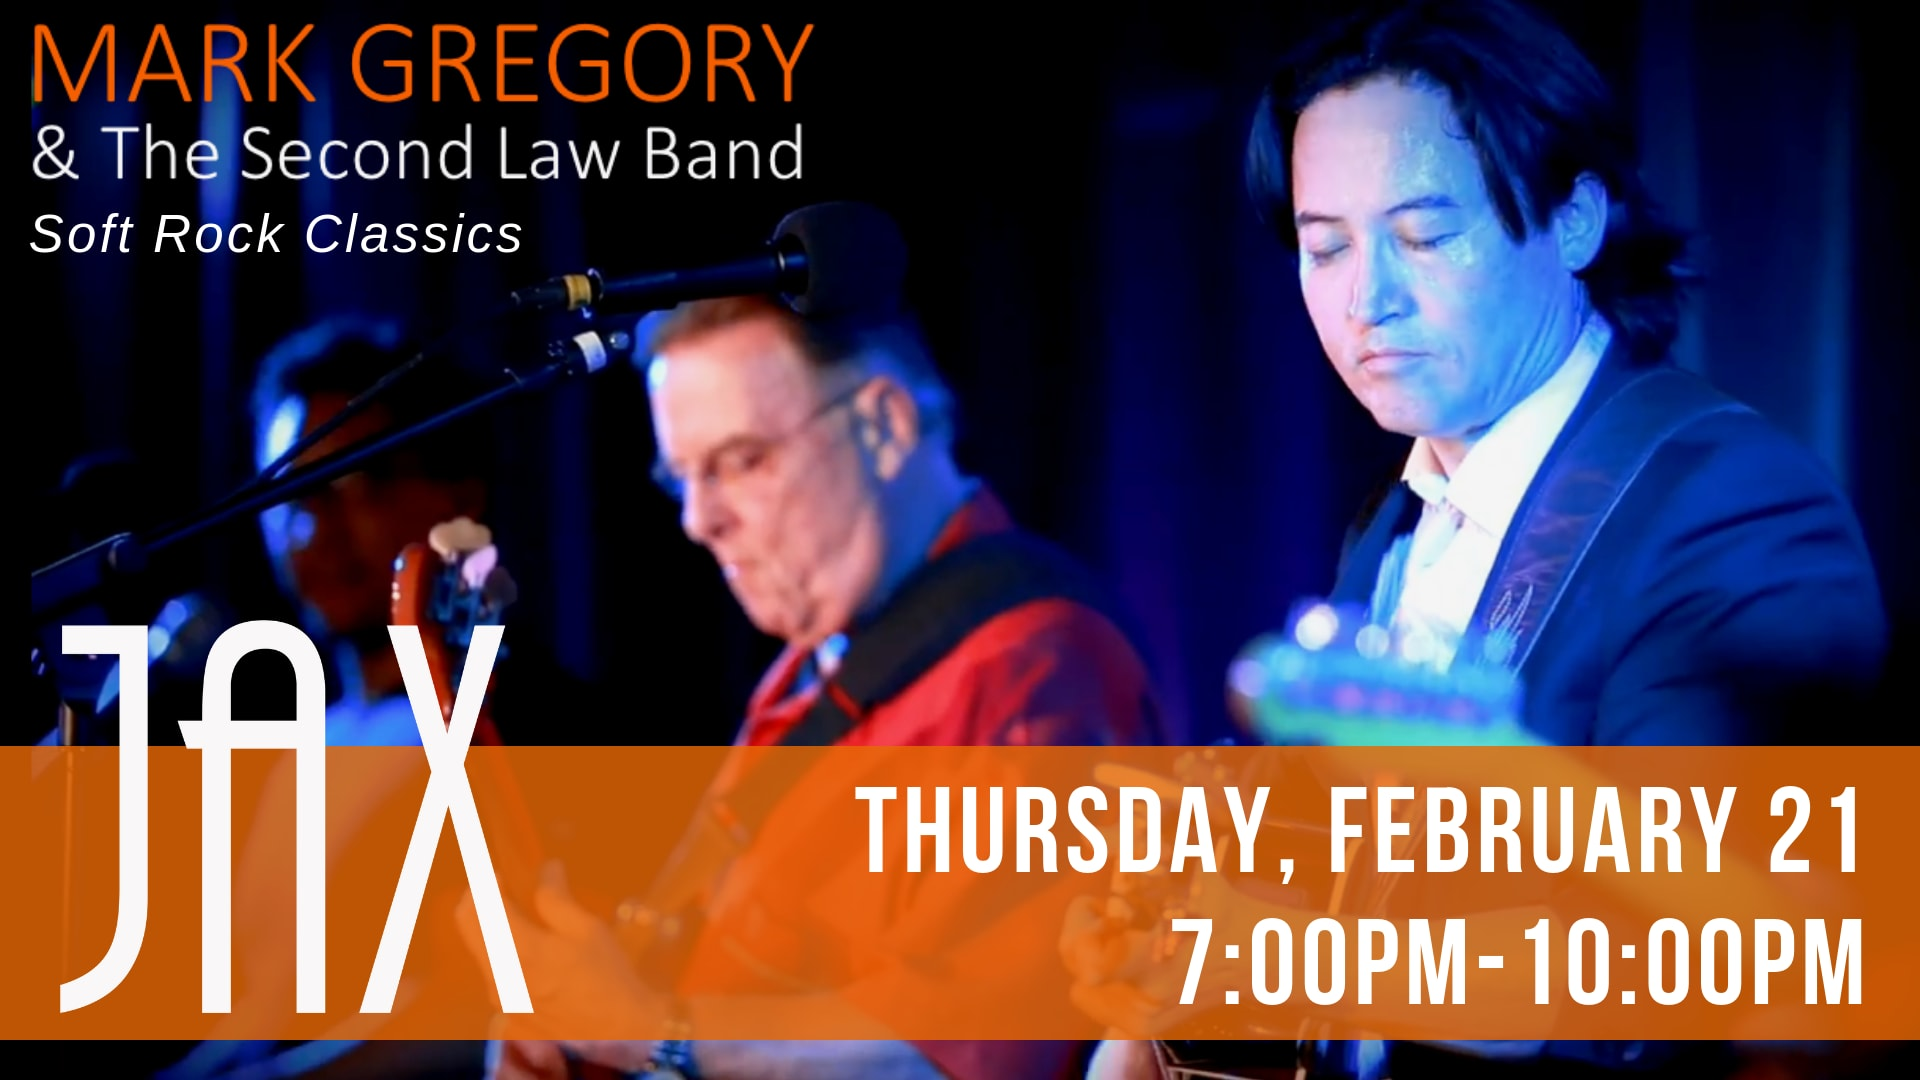 February 21 | MARK GREGORY AND THE SECOND LAW BAND